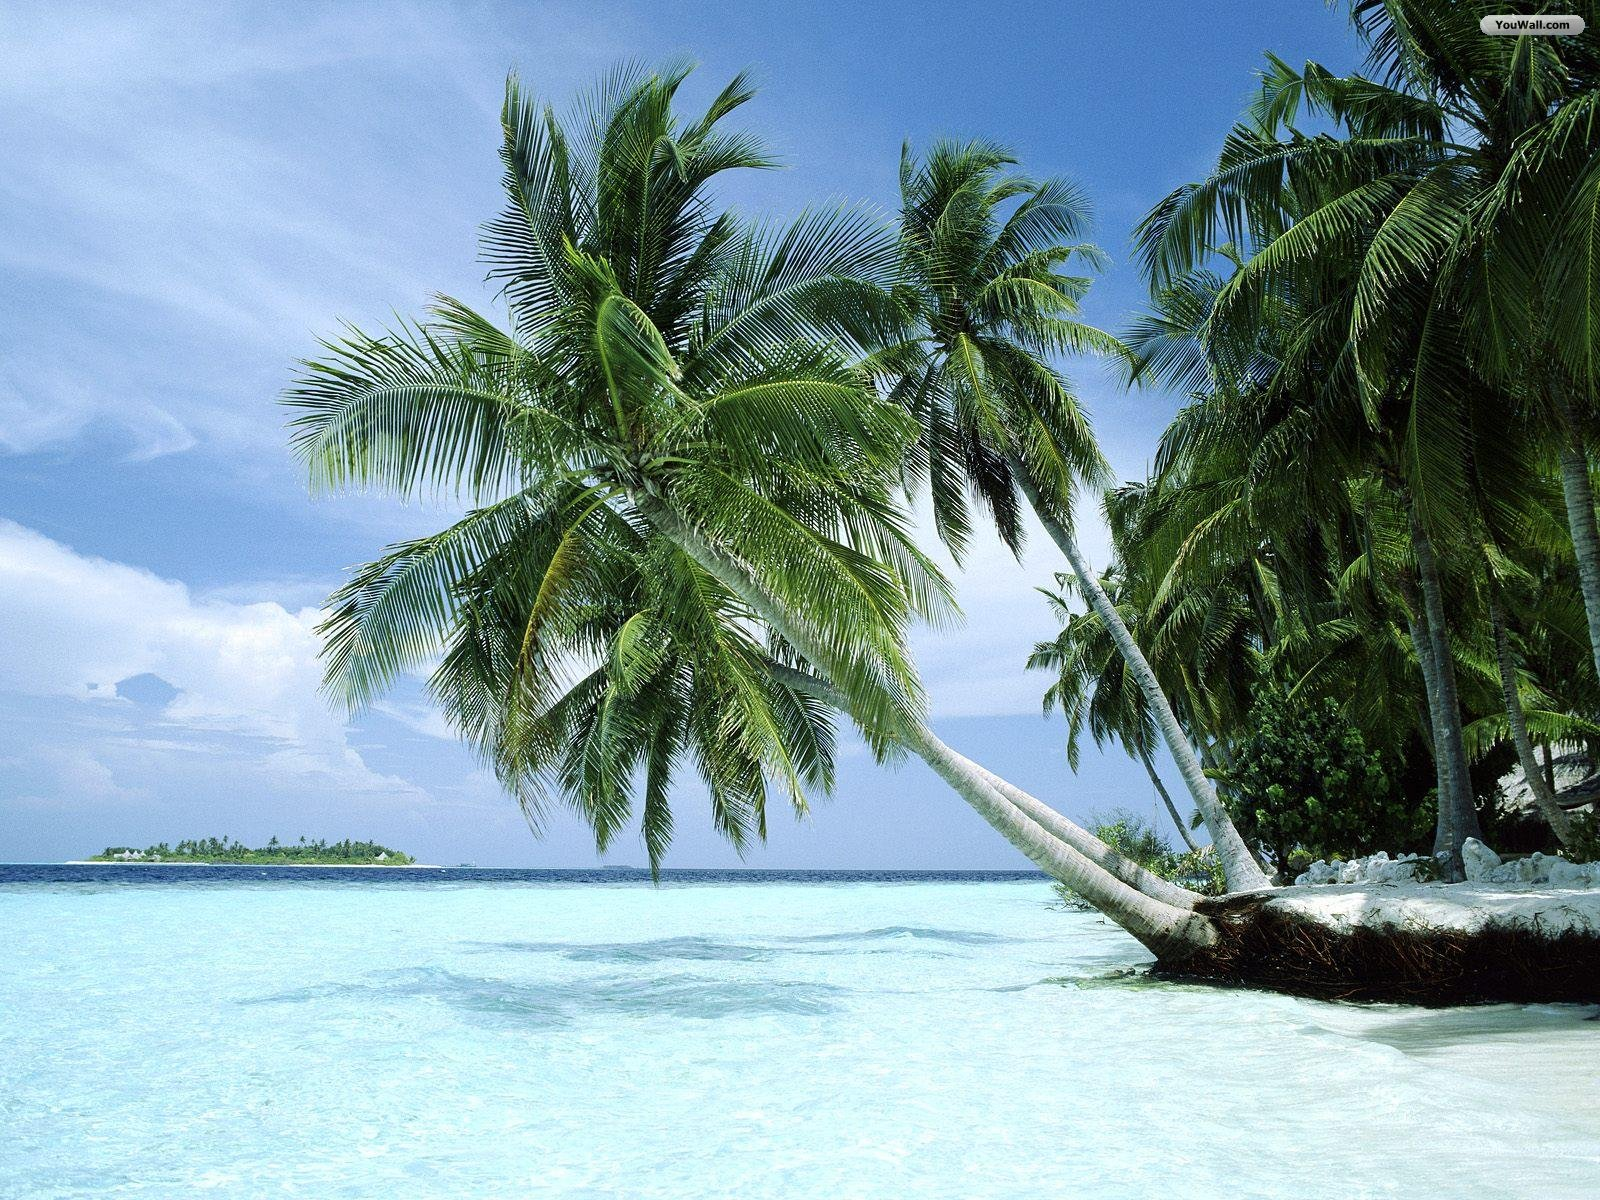 Paradise Beach Wallpaper   wallpaperwallpapersfree wallpaper 1600x1200